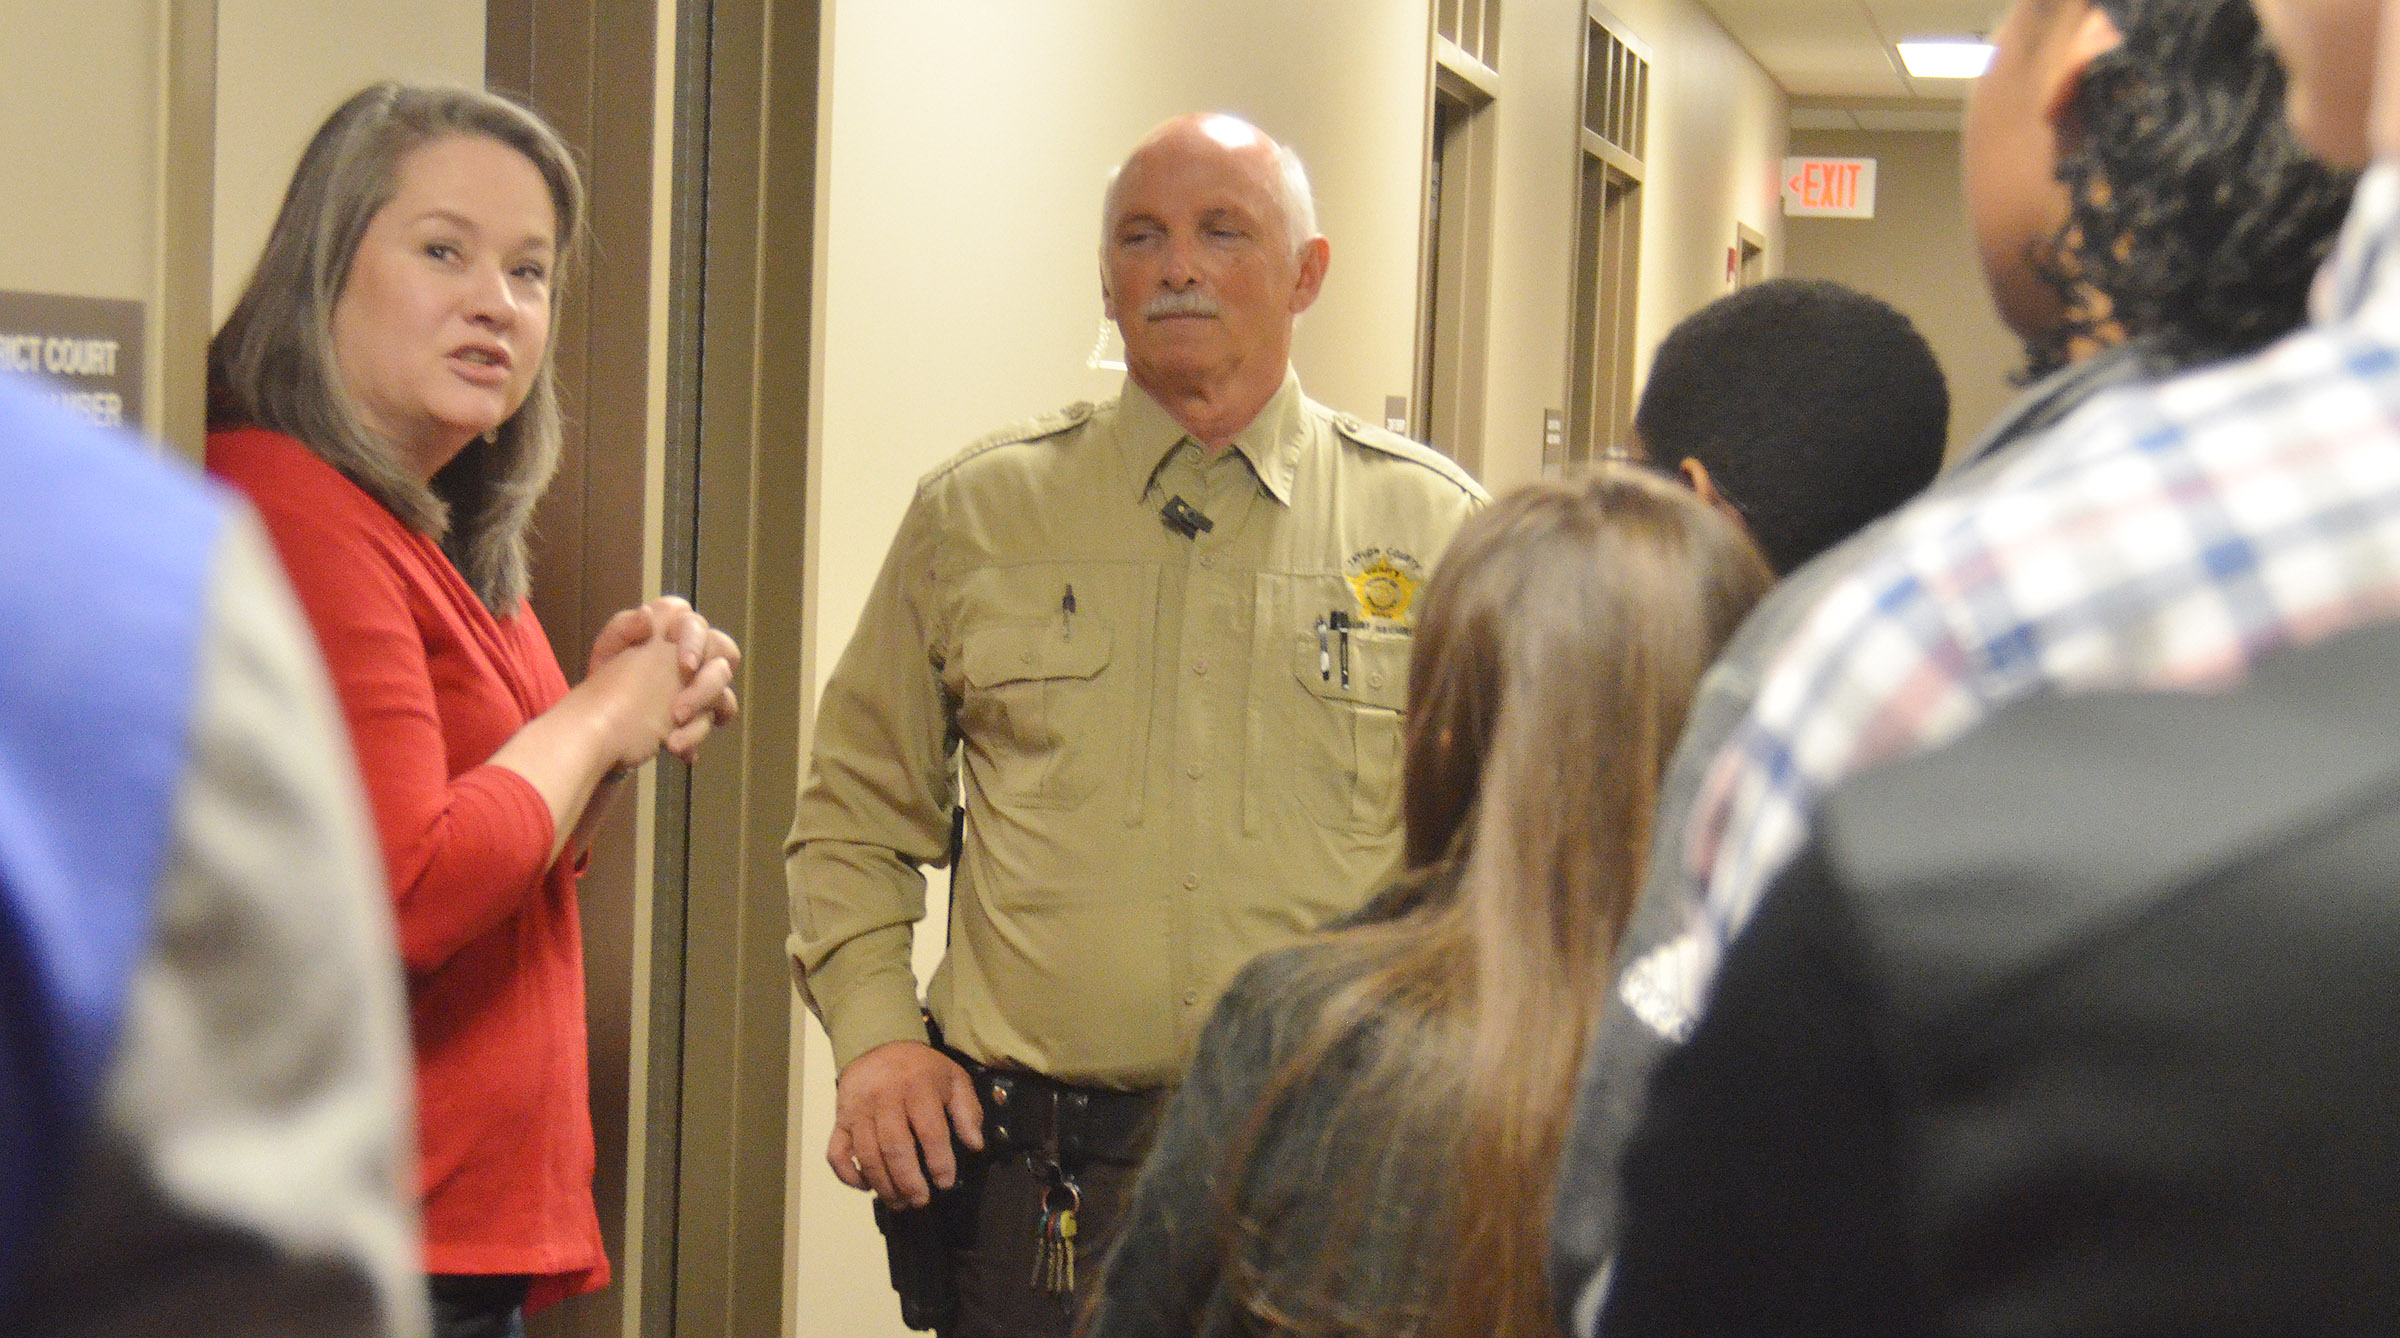 Taylor County District Court Judge Amy Anderson and Kenny Anderson, a security officer at Taylor County Judicial Center, talk to CHS sophomores about criminal court.